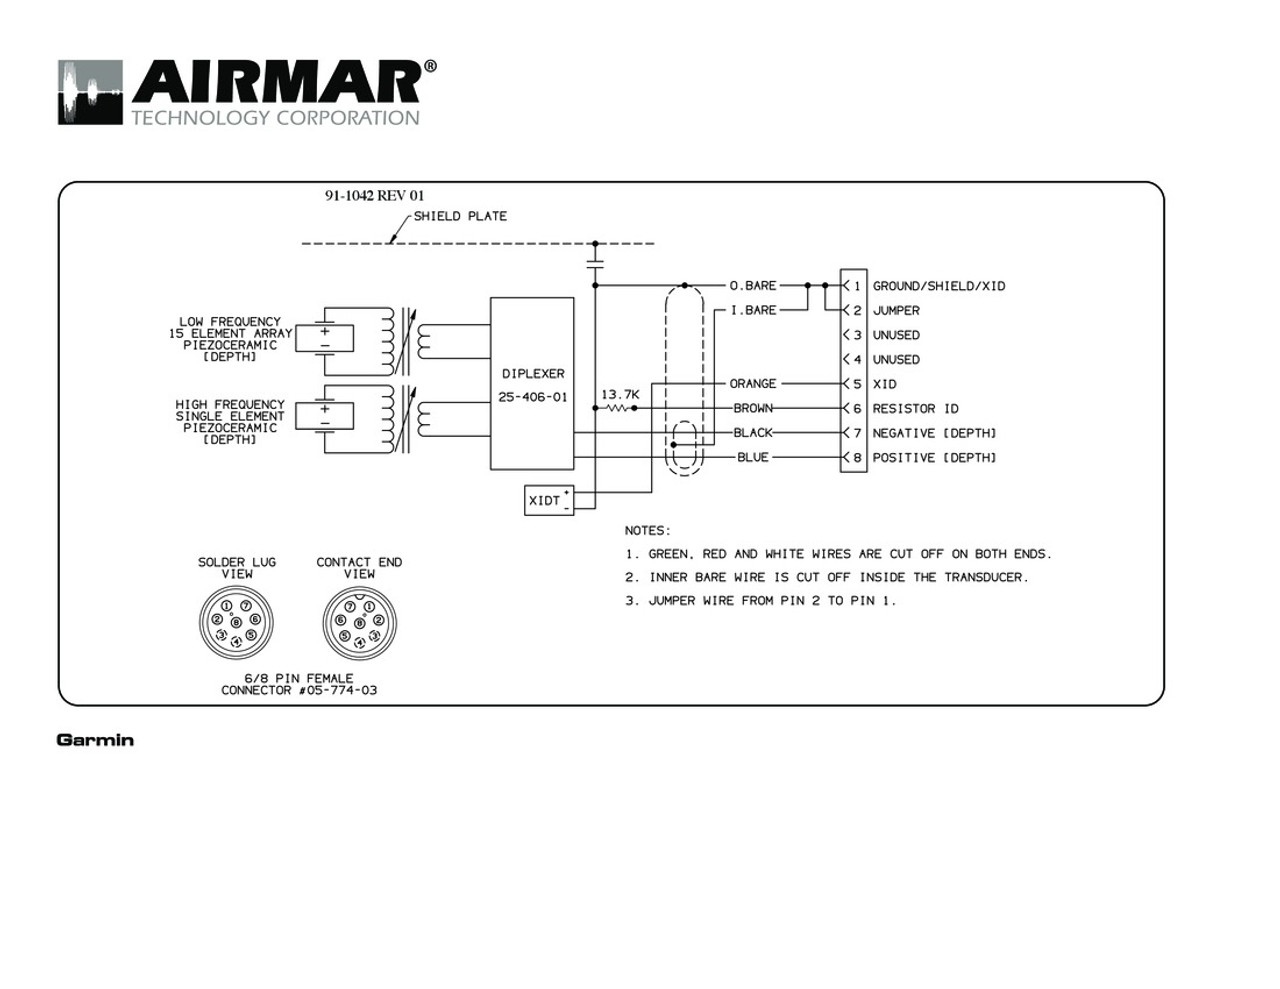 garmin usb power cable wiring diagram sample business process flow airmar r199 8 pin d t blue